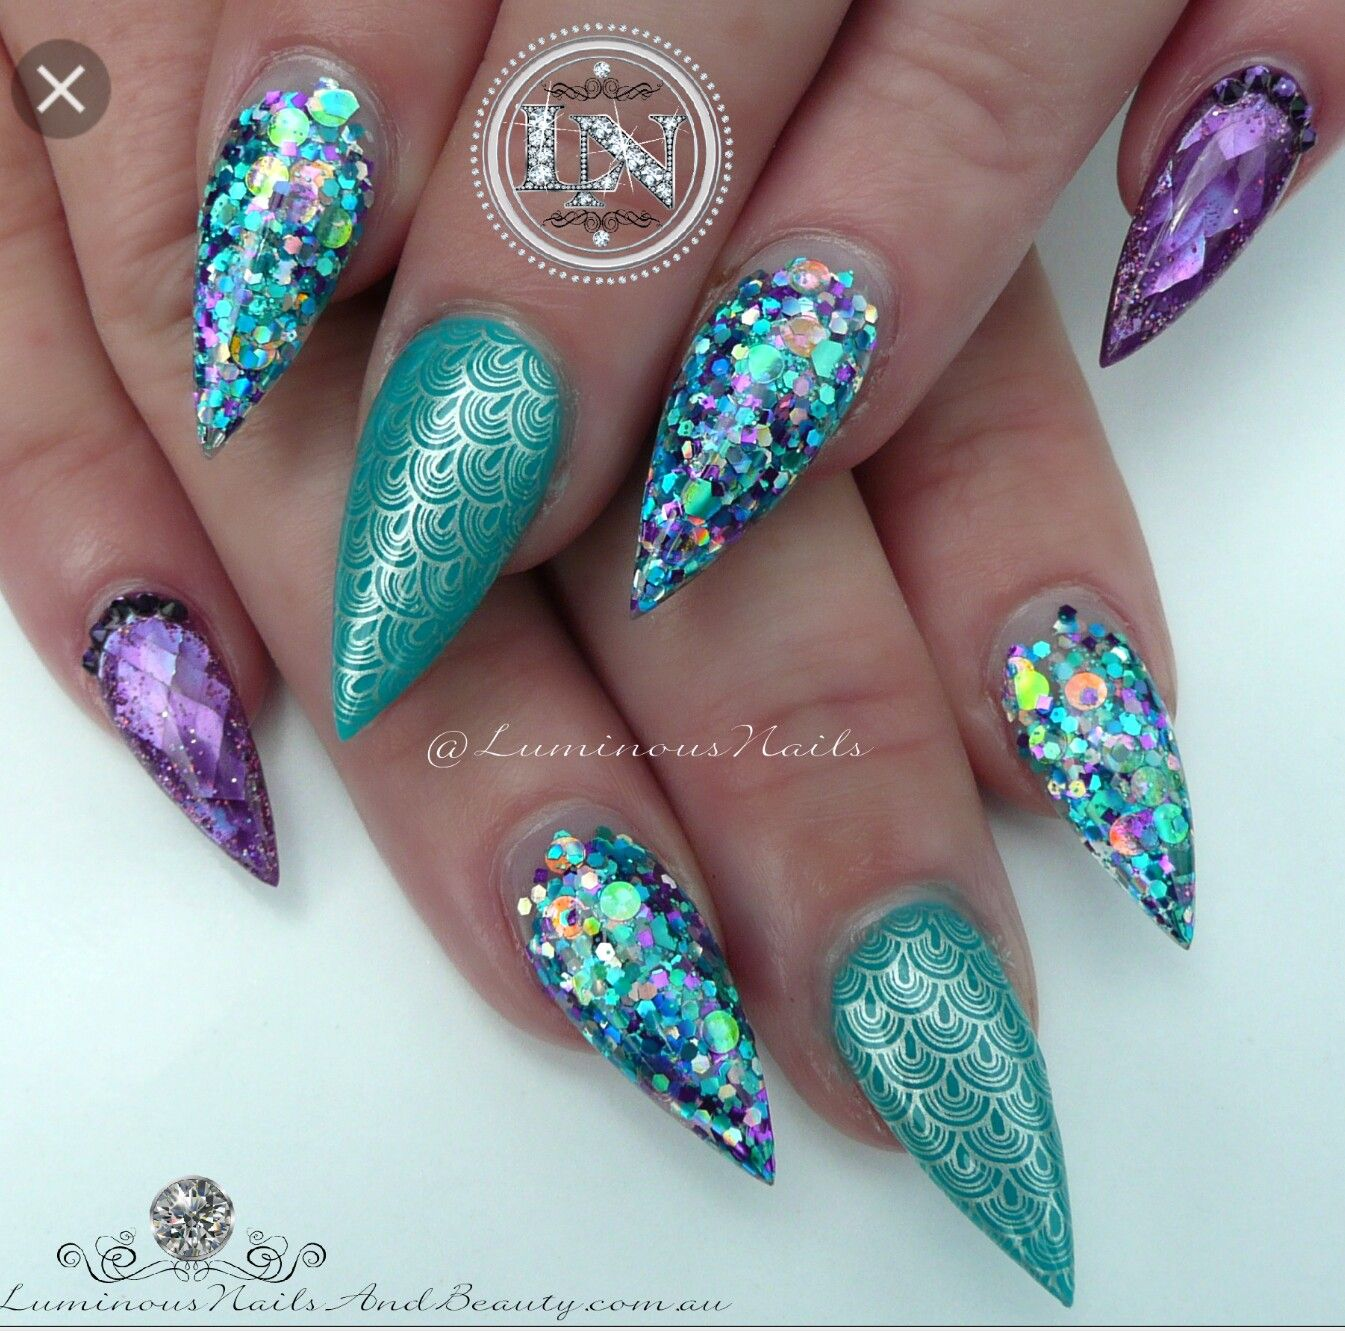 Pin de Princess en nails | Pinterest | Diseños de uñas, Arte de uñas ...